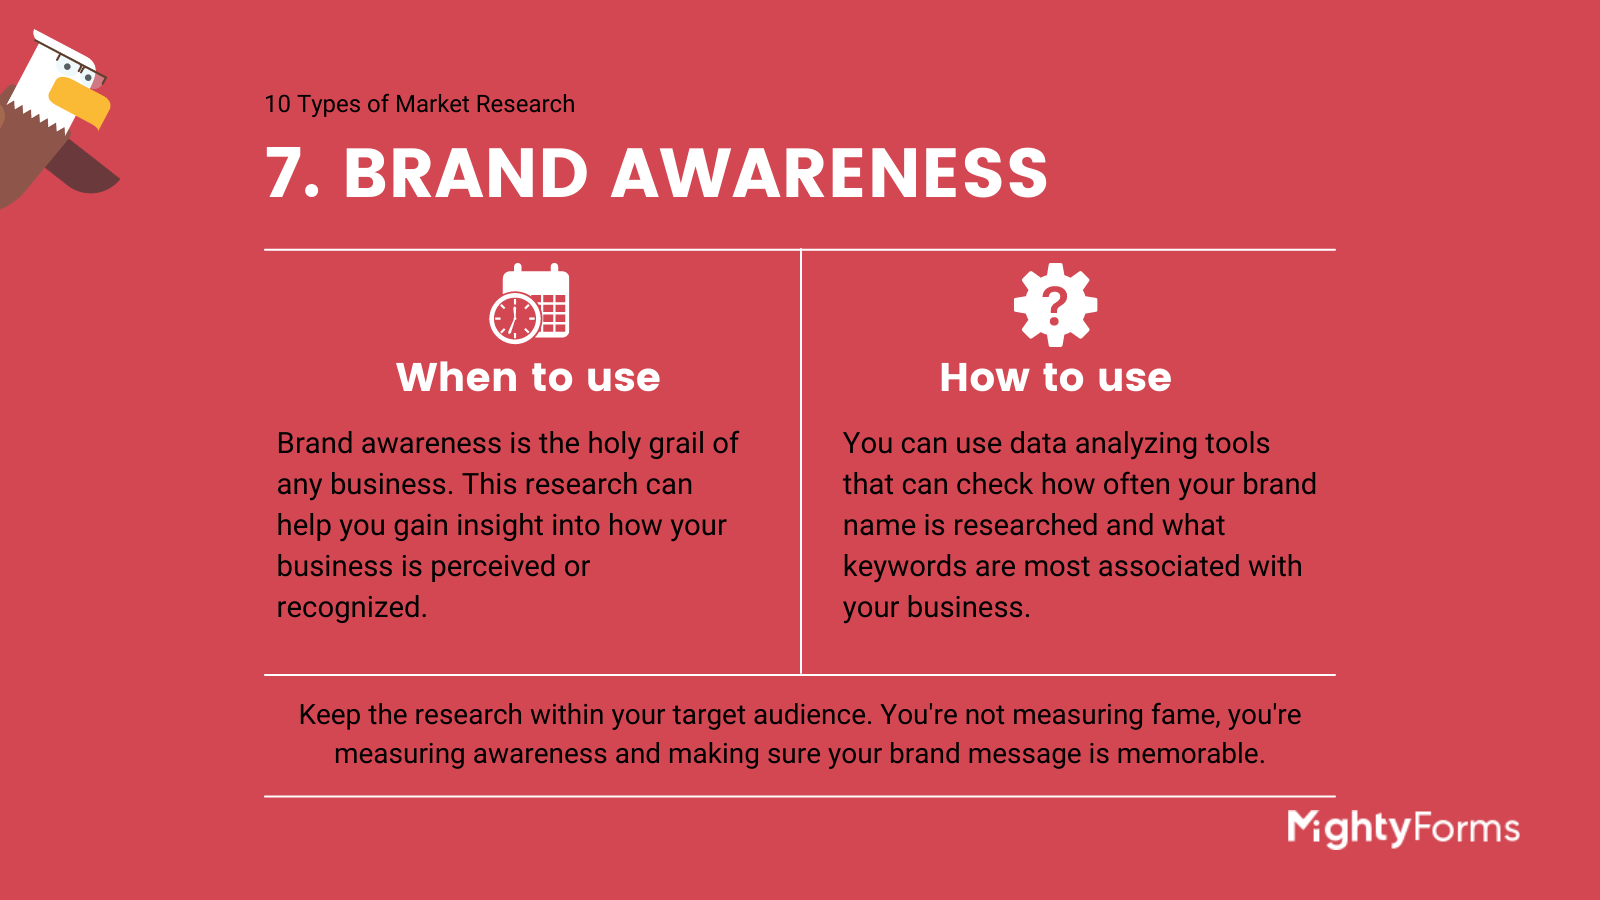 Types of Market Research - Brand awareness - infographic_ MightyForms